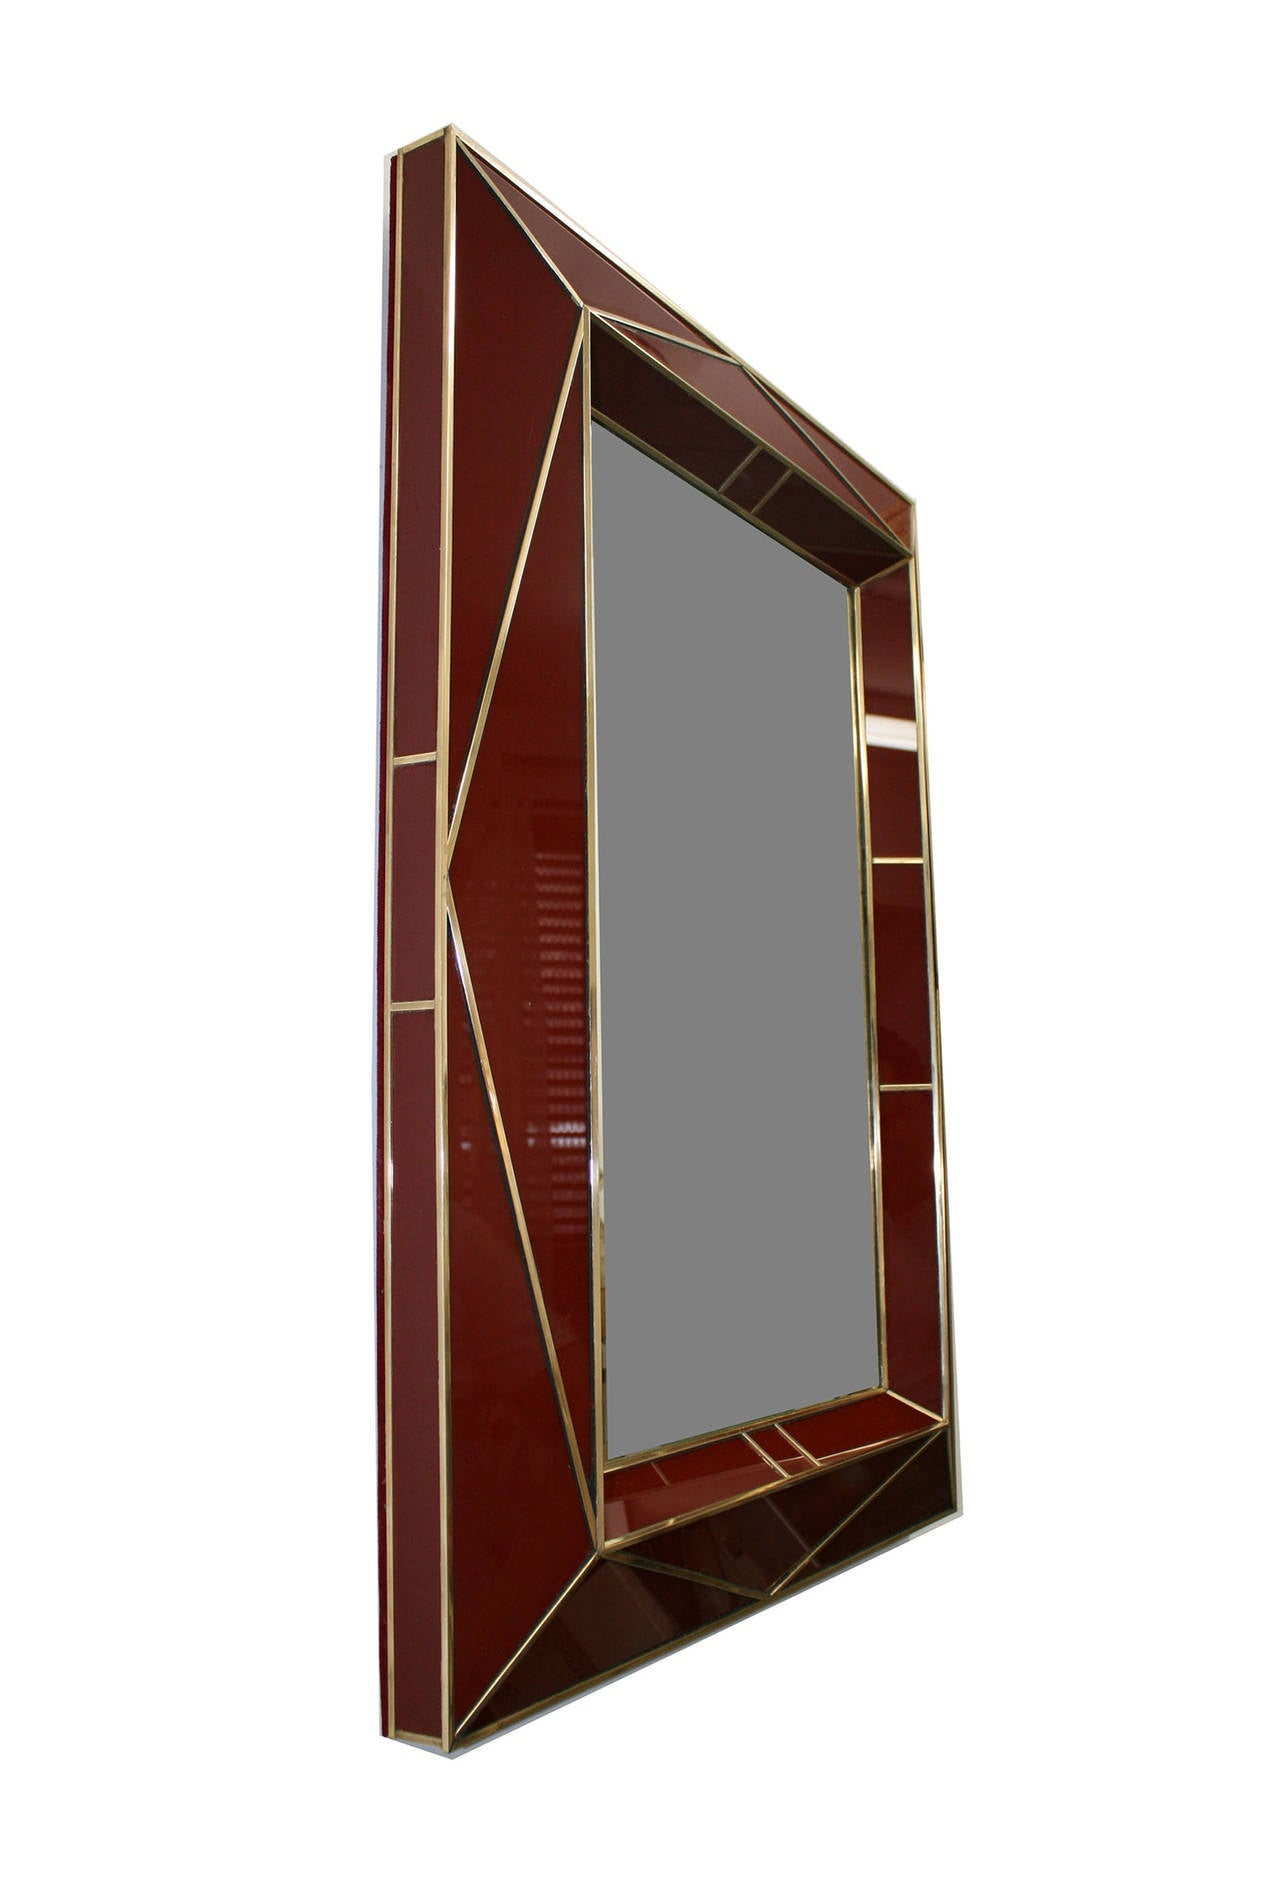 Contemporary american brass trimmed colored glass mirror for sale at 1stdibs Mirror glass furniture